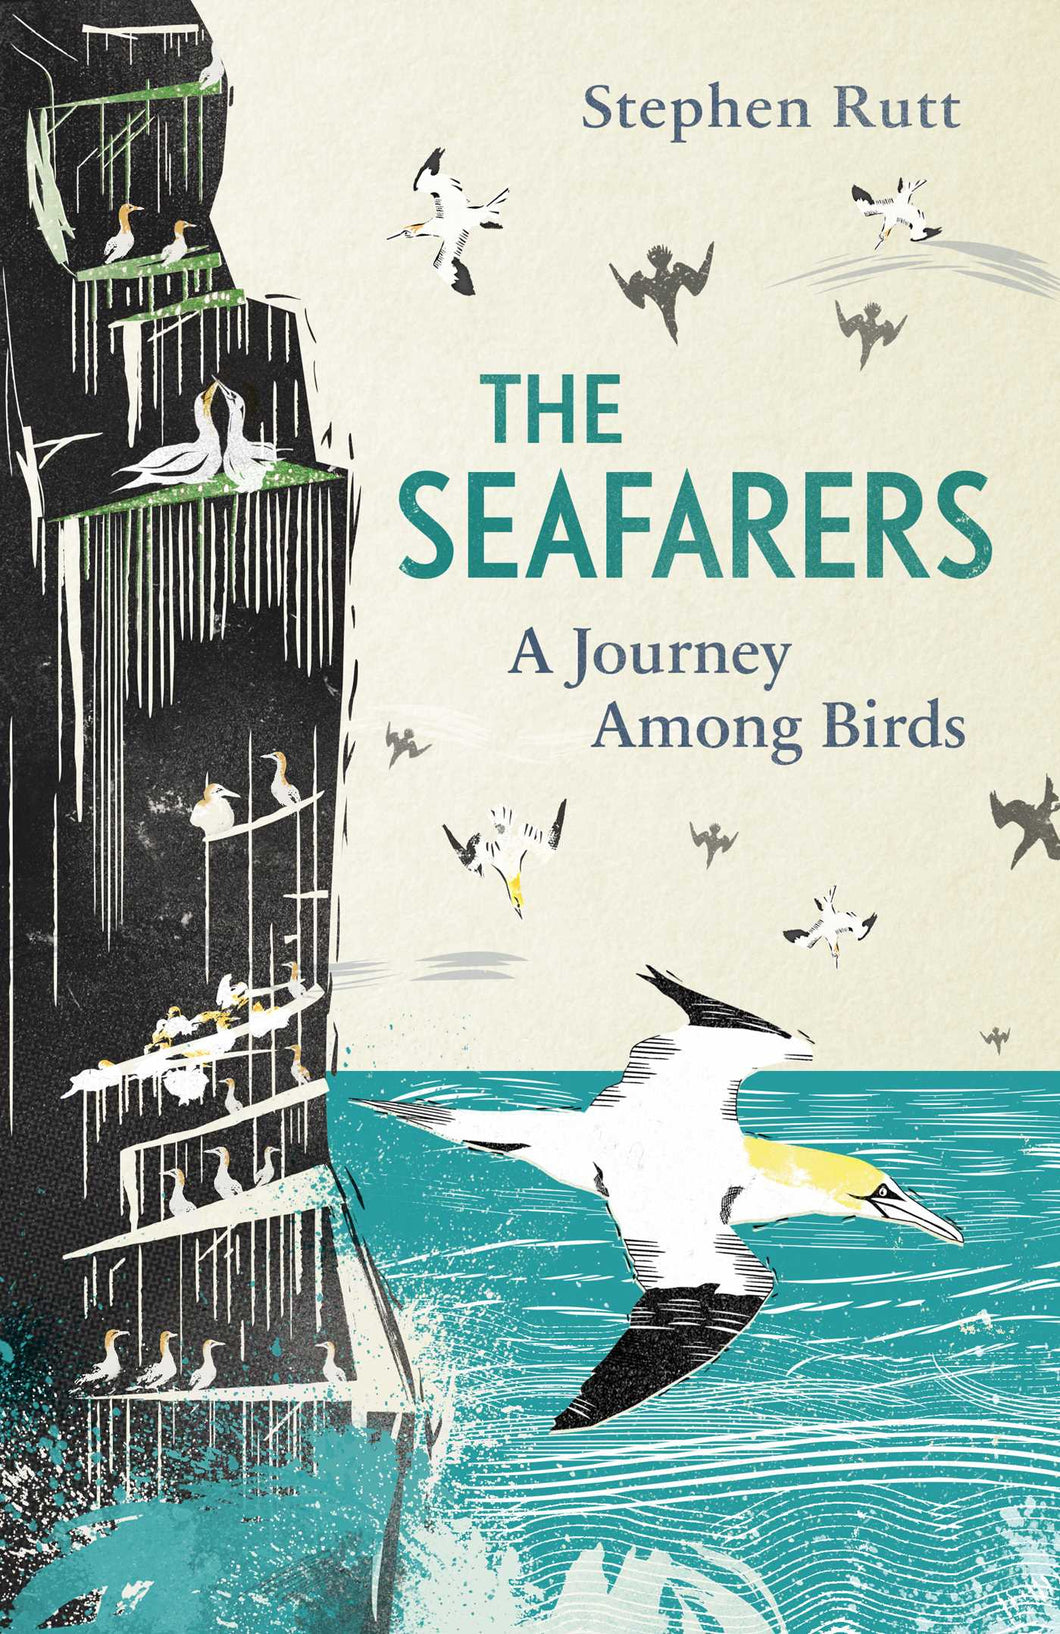 The Seafarers - Stephen Rutt